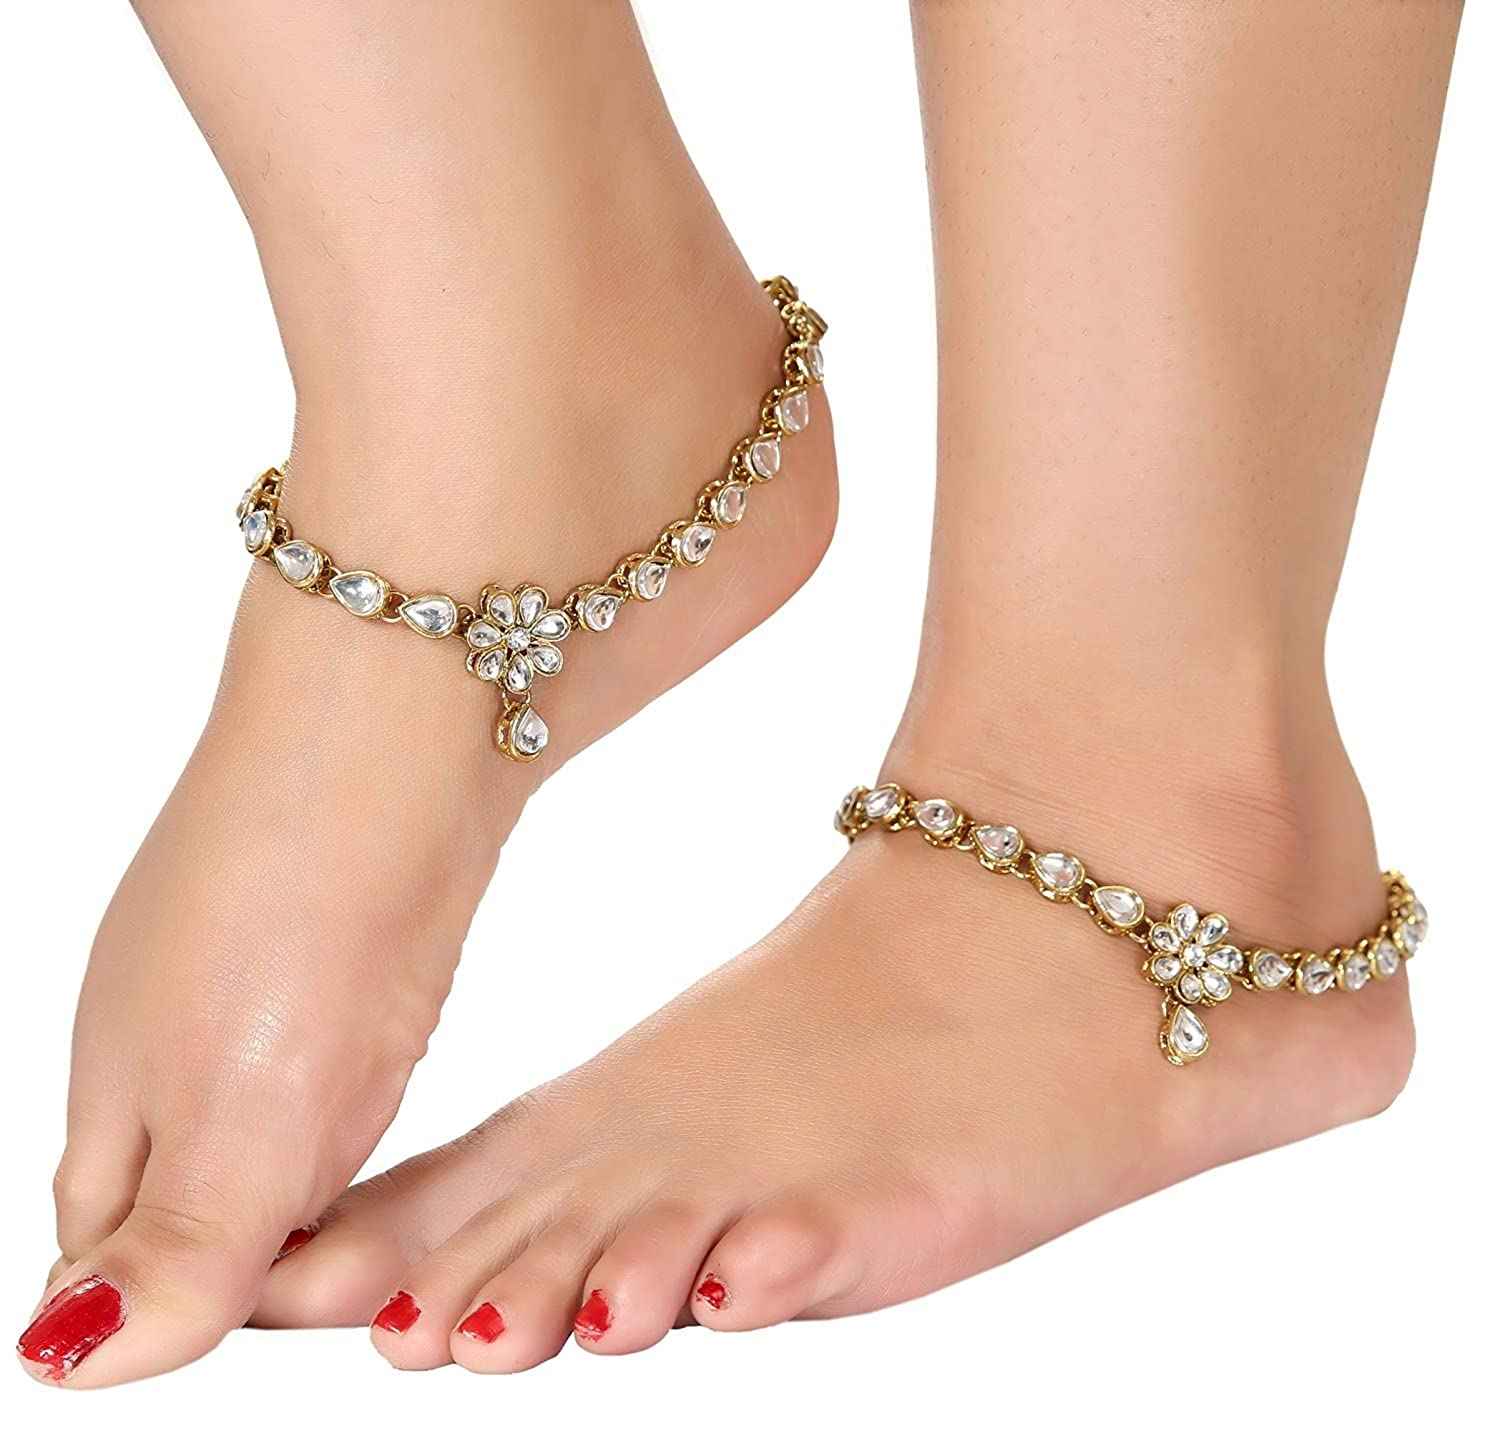 anklet women new anklets designs online silver for gold leaf minimalistic buy in india